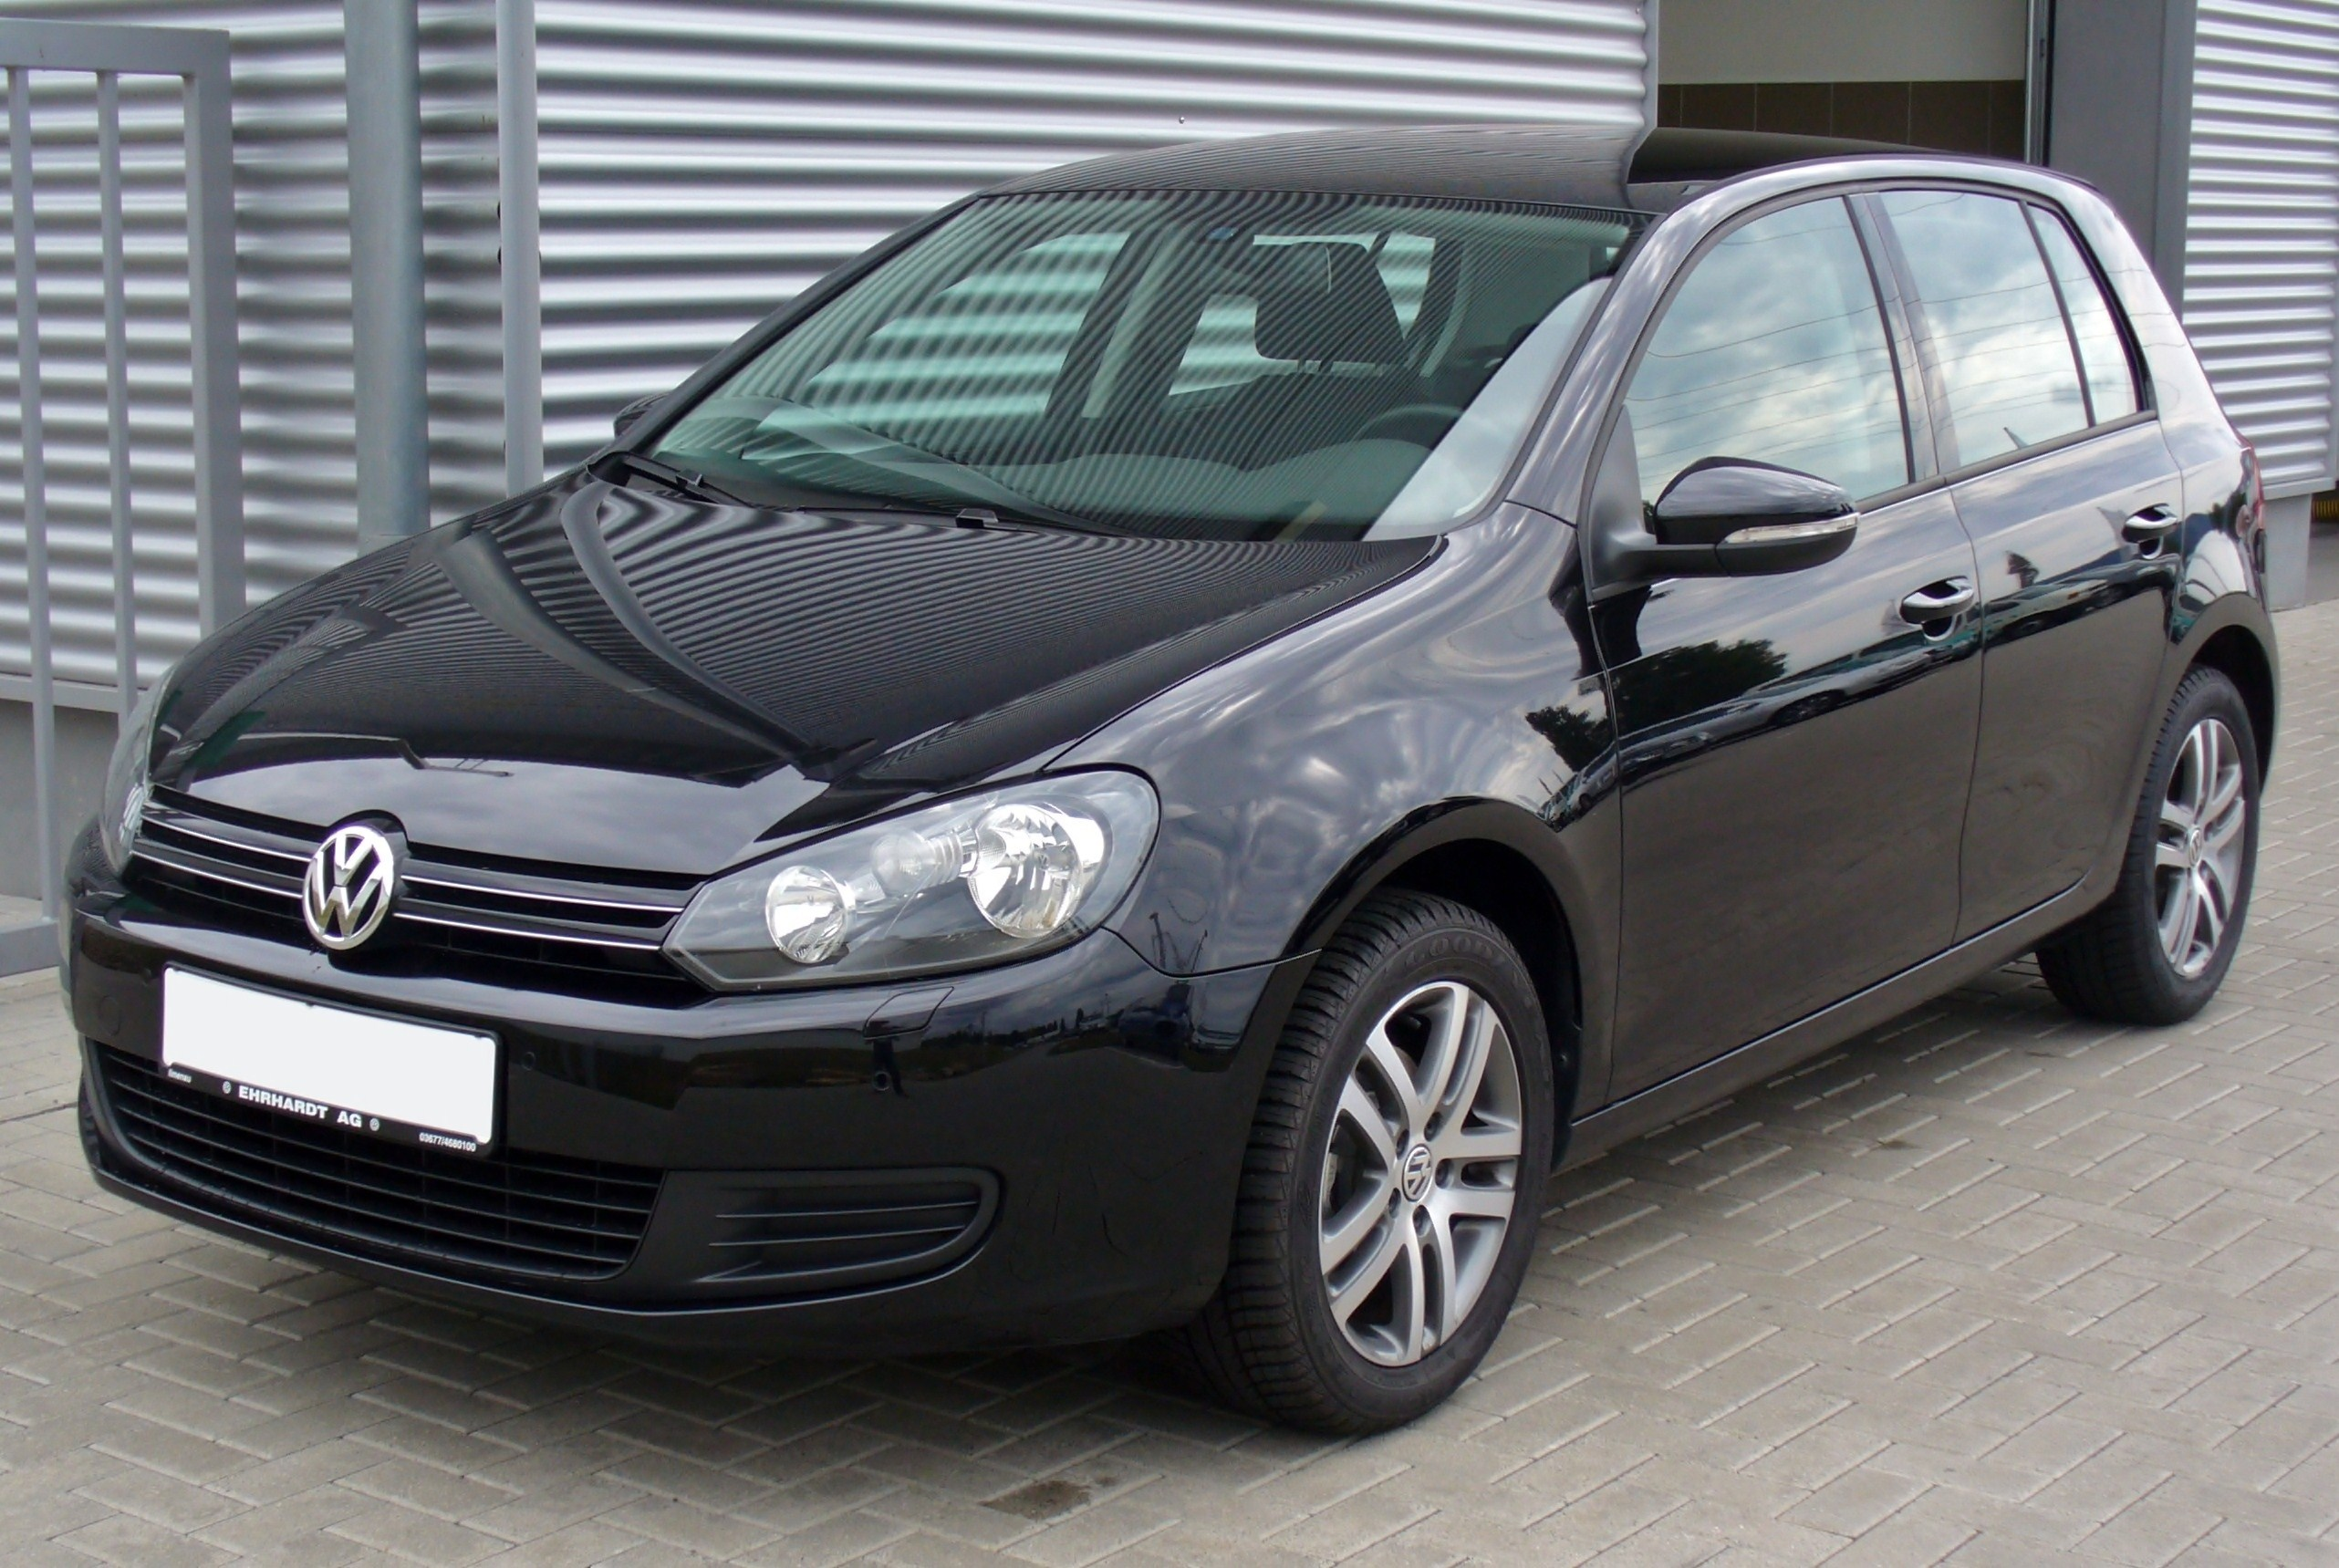 Volkswagen Golf VI  Wikipedia